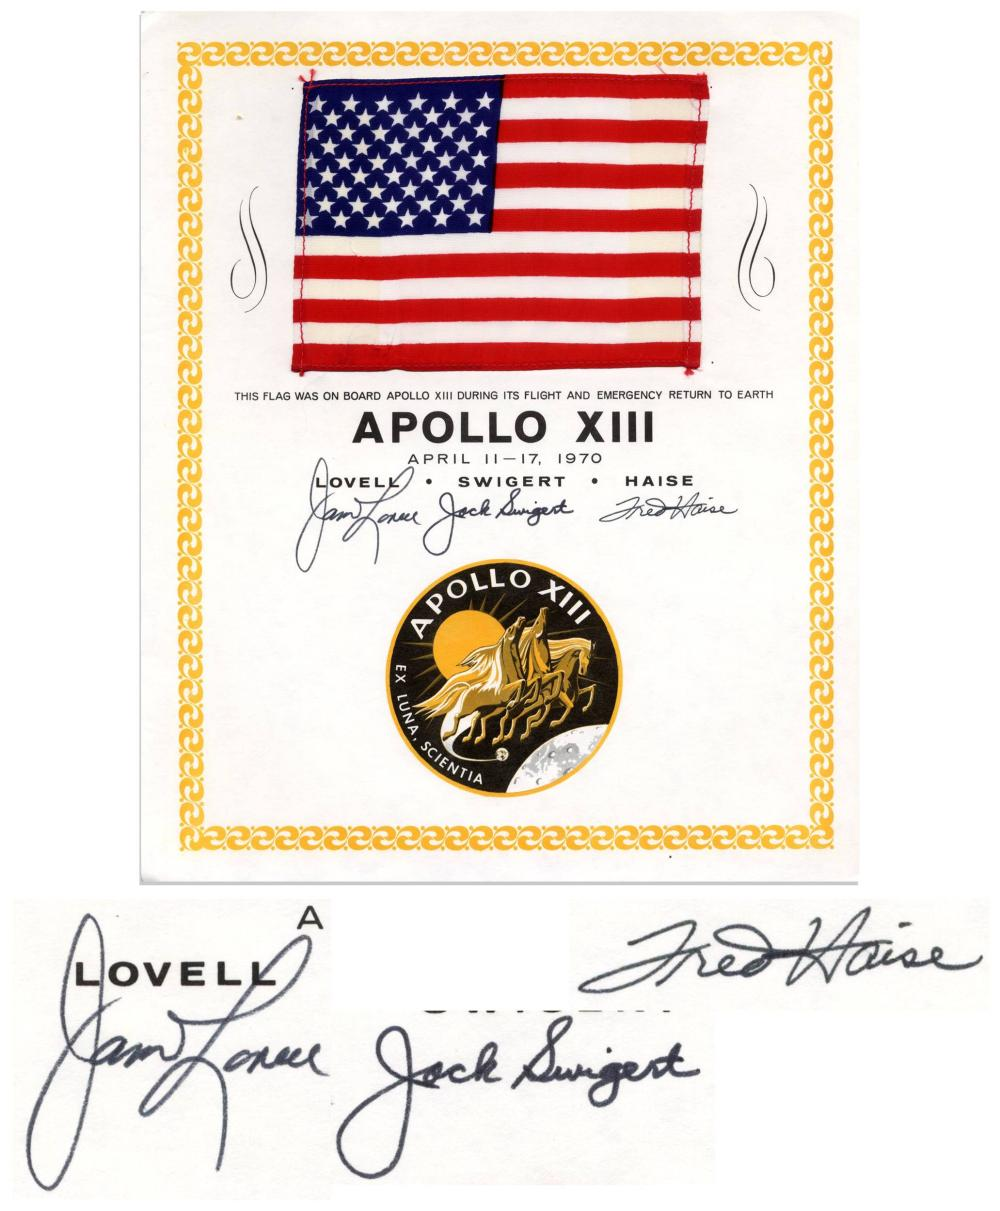 Apollo 13 United States Flag Space-Flown, Crew-Signed, from the Jack Swigert Estate